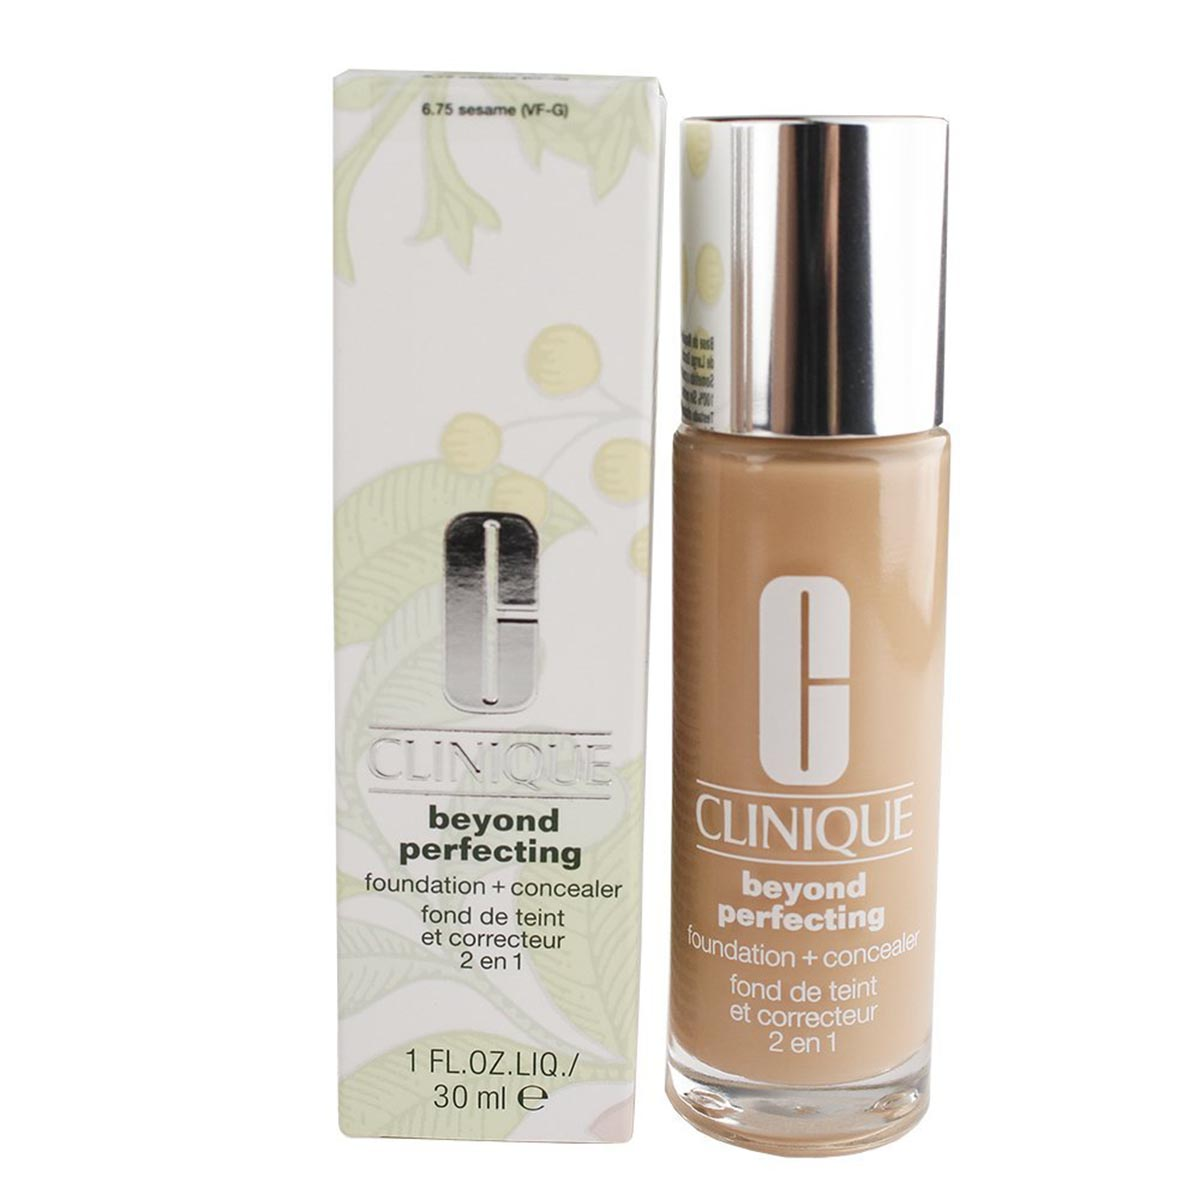 Clinique beyond perfecting foundation concealer 08 golden neutral